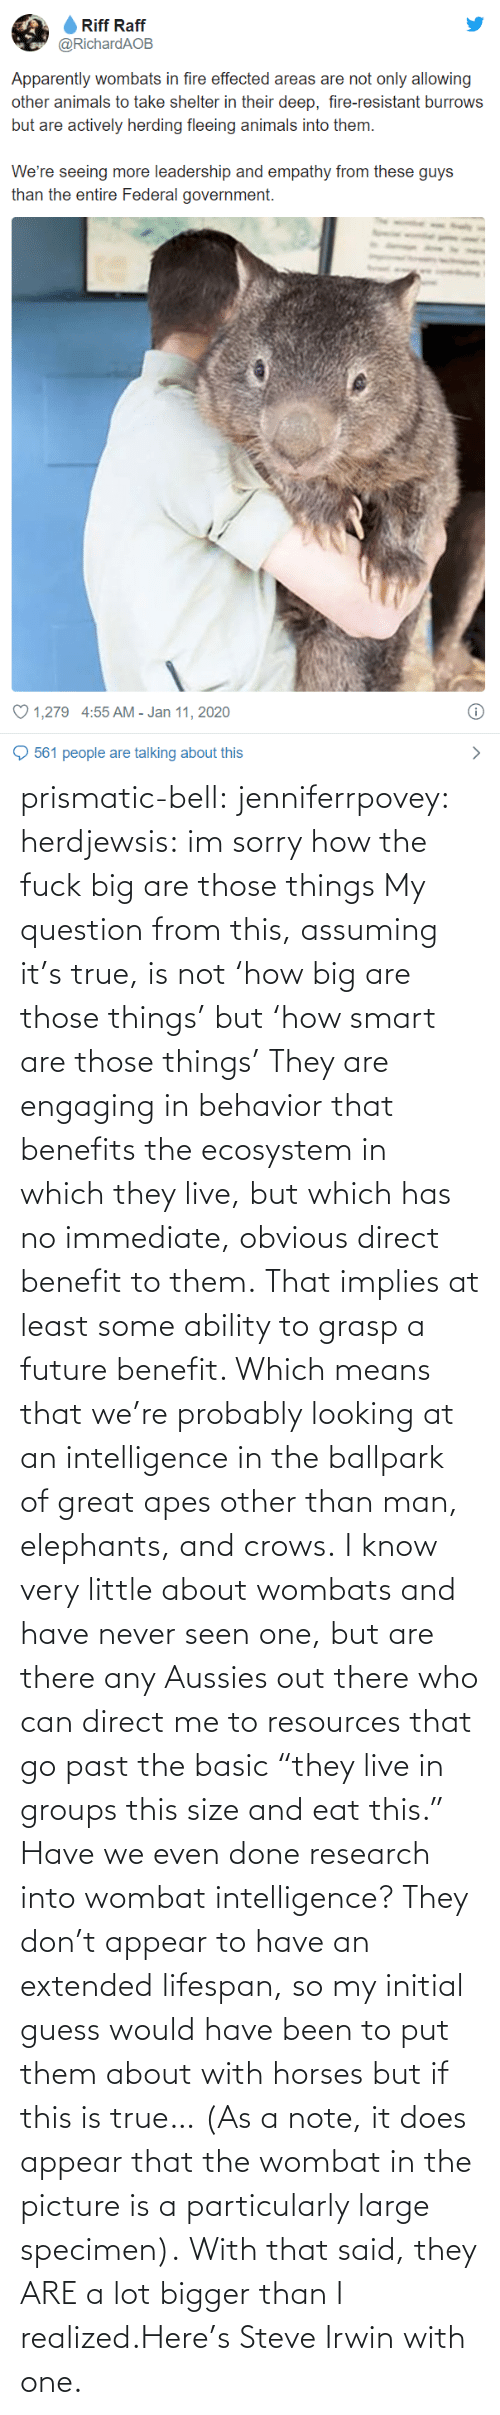 "Bigger: prismatic-bell:  jenniferrpovey: herdjewsis: im sorry how the fuck big are those things My question from this, assuming it's true, is not 'how big are those things' but 'how smart are those things' They are engaging in behavior that benefits the ecosystem in which they live, but which has no immediate, obvious direct benefit to them. That implies at least some ability to grasp a future benefit. Which means that we're probably looking at an intelligence in the ballpark of great apes other than man, elephants, and crows. I know very little about wombats and have never seen one, but are there any Aussies out there who can direct me to resources that go past the basic ""they live in groups this size and eat this."" Have we even done research into wombat intelligence? They don't appear to have an extended lifespan, so my initial guess would have been to put them about with horses but if this is true… (As a note, it does appear that the wombat in the picture is a particularly large specimen).  With that said, they ARE a lot bigger than I realized.Here's Steve Irwin with one."